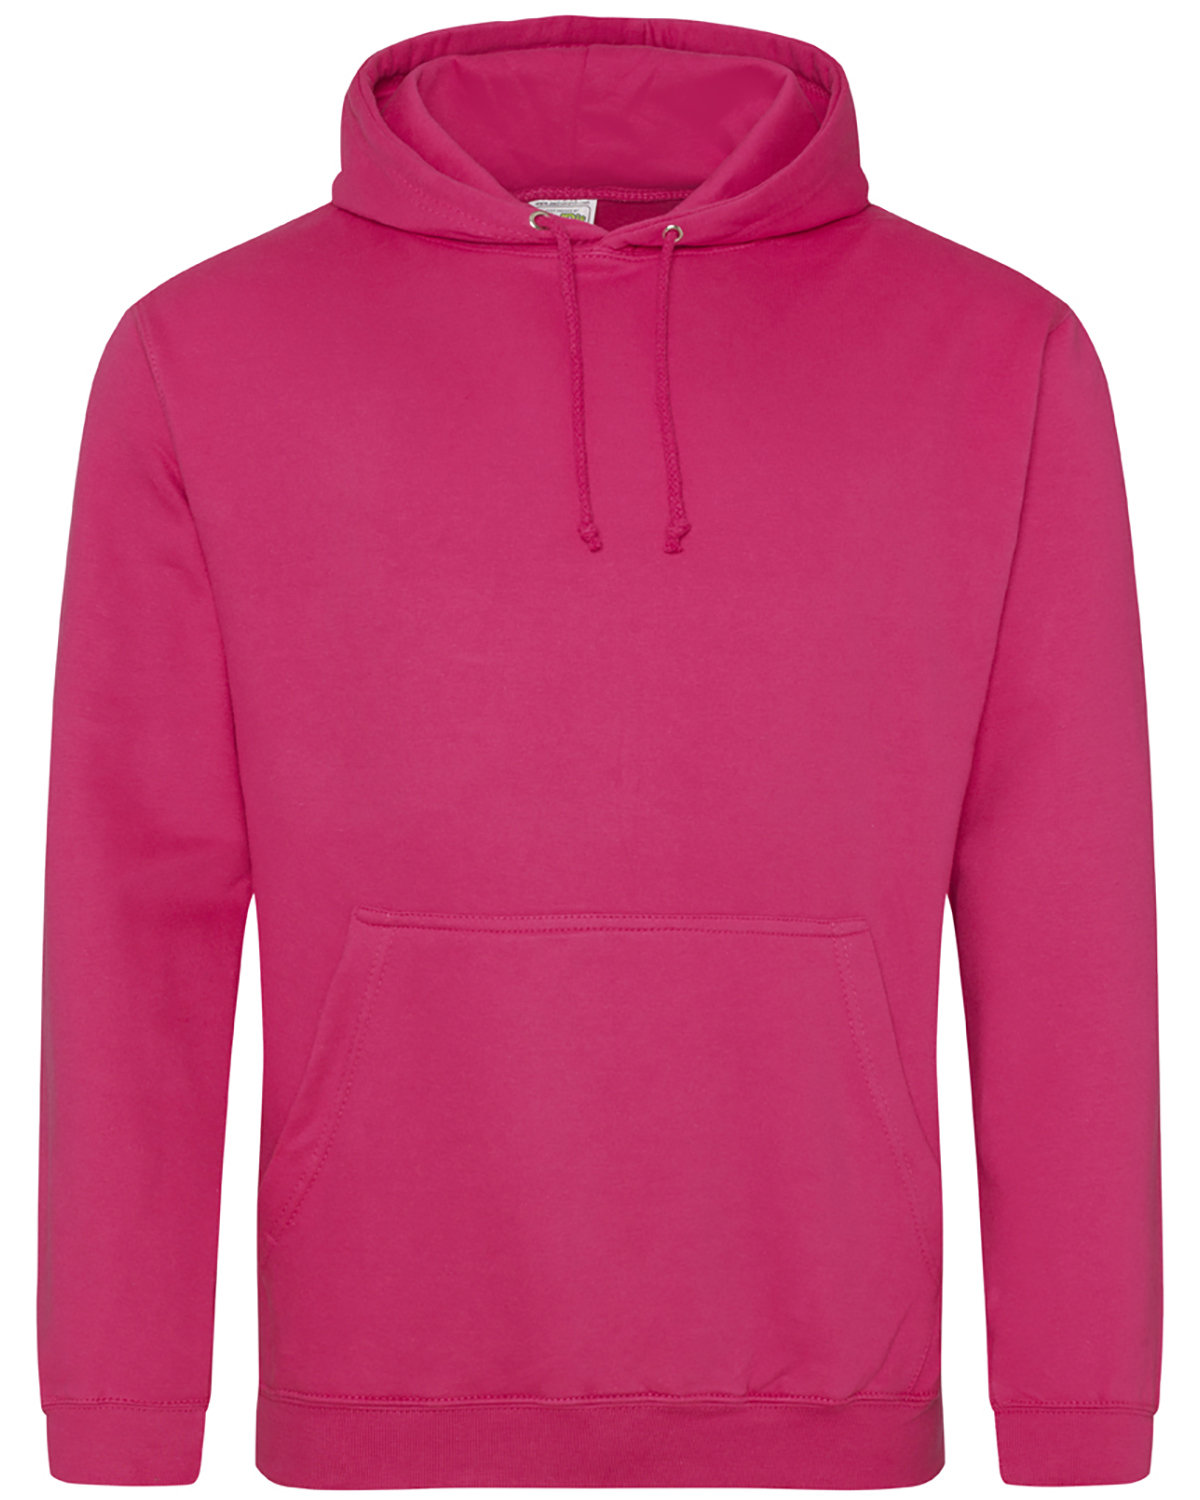 Just Hoods By AWDis Men's 80/20 Midweight College Hooded Sweatshirt HOT PINK